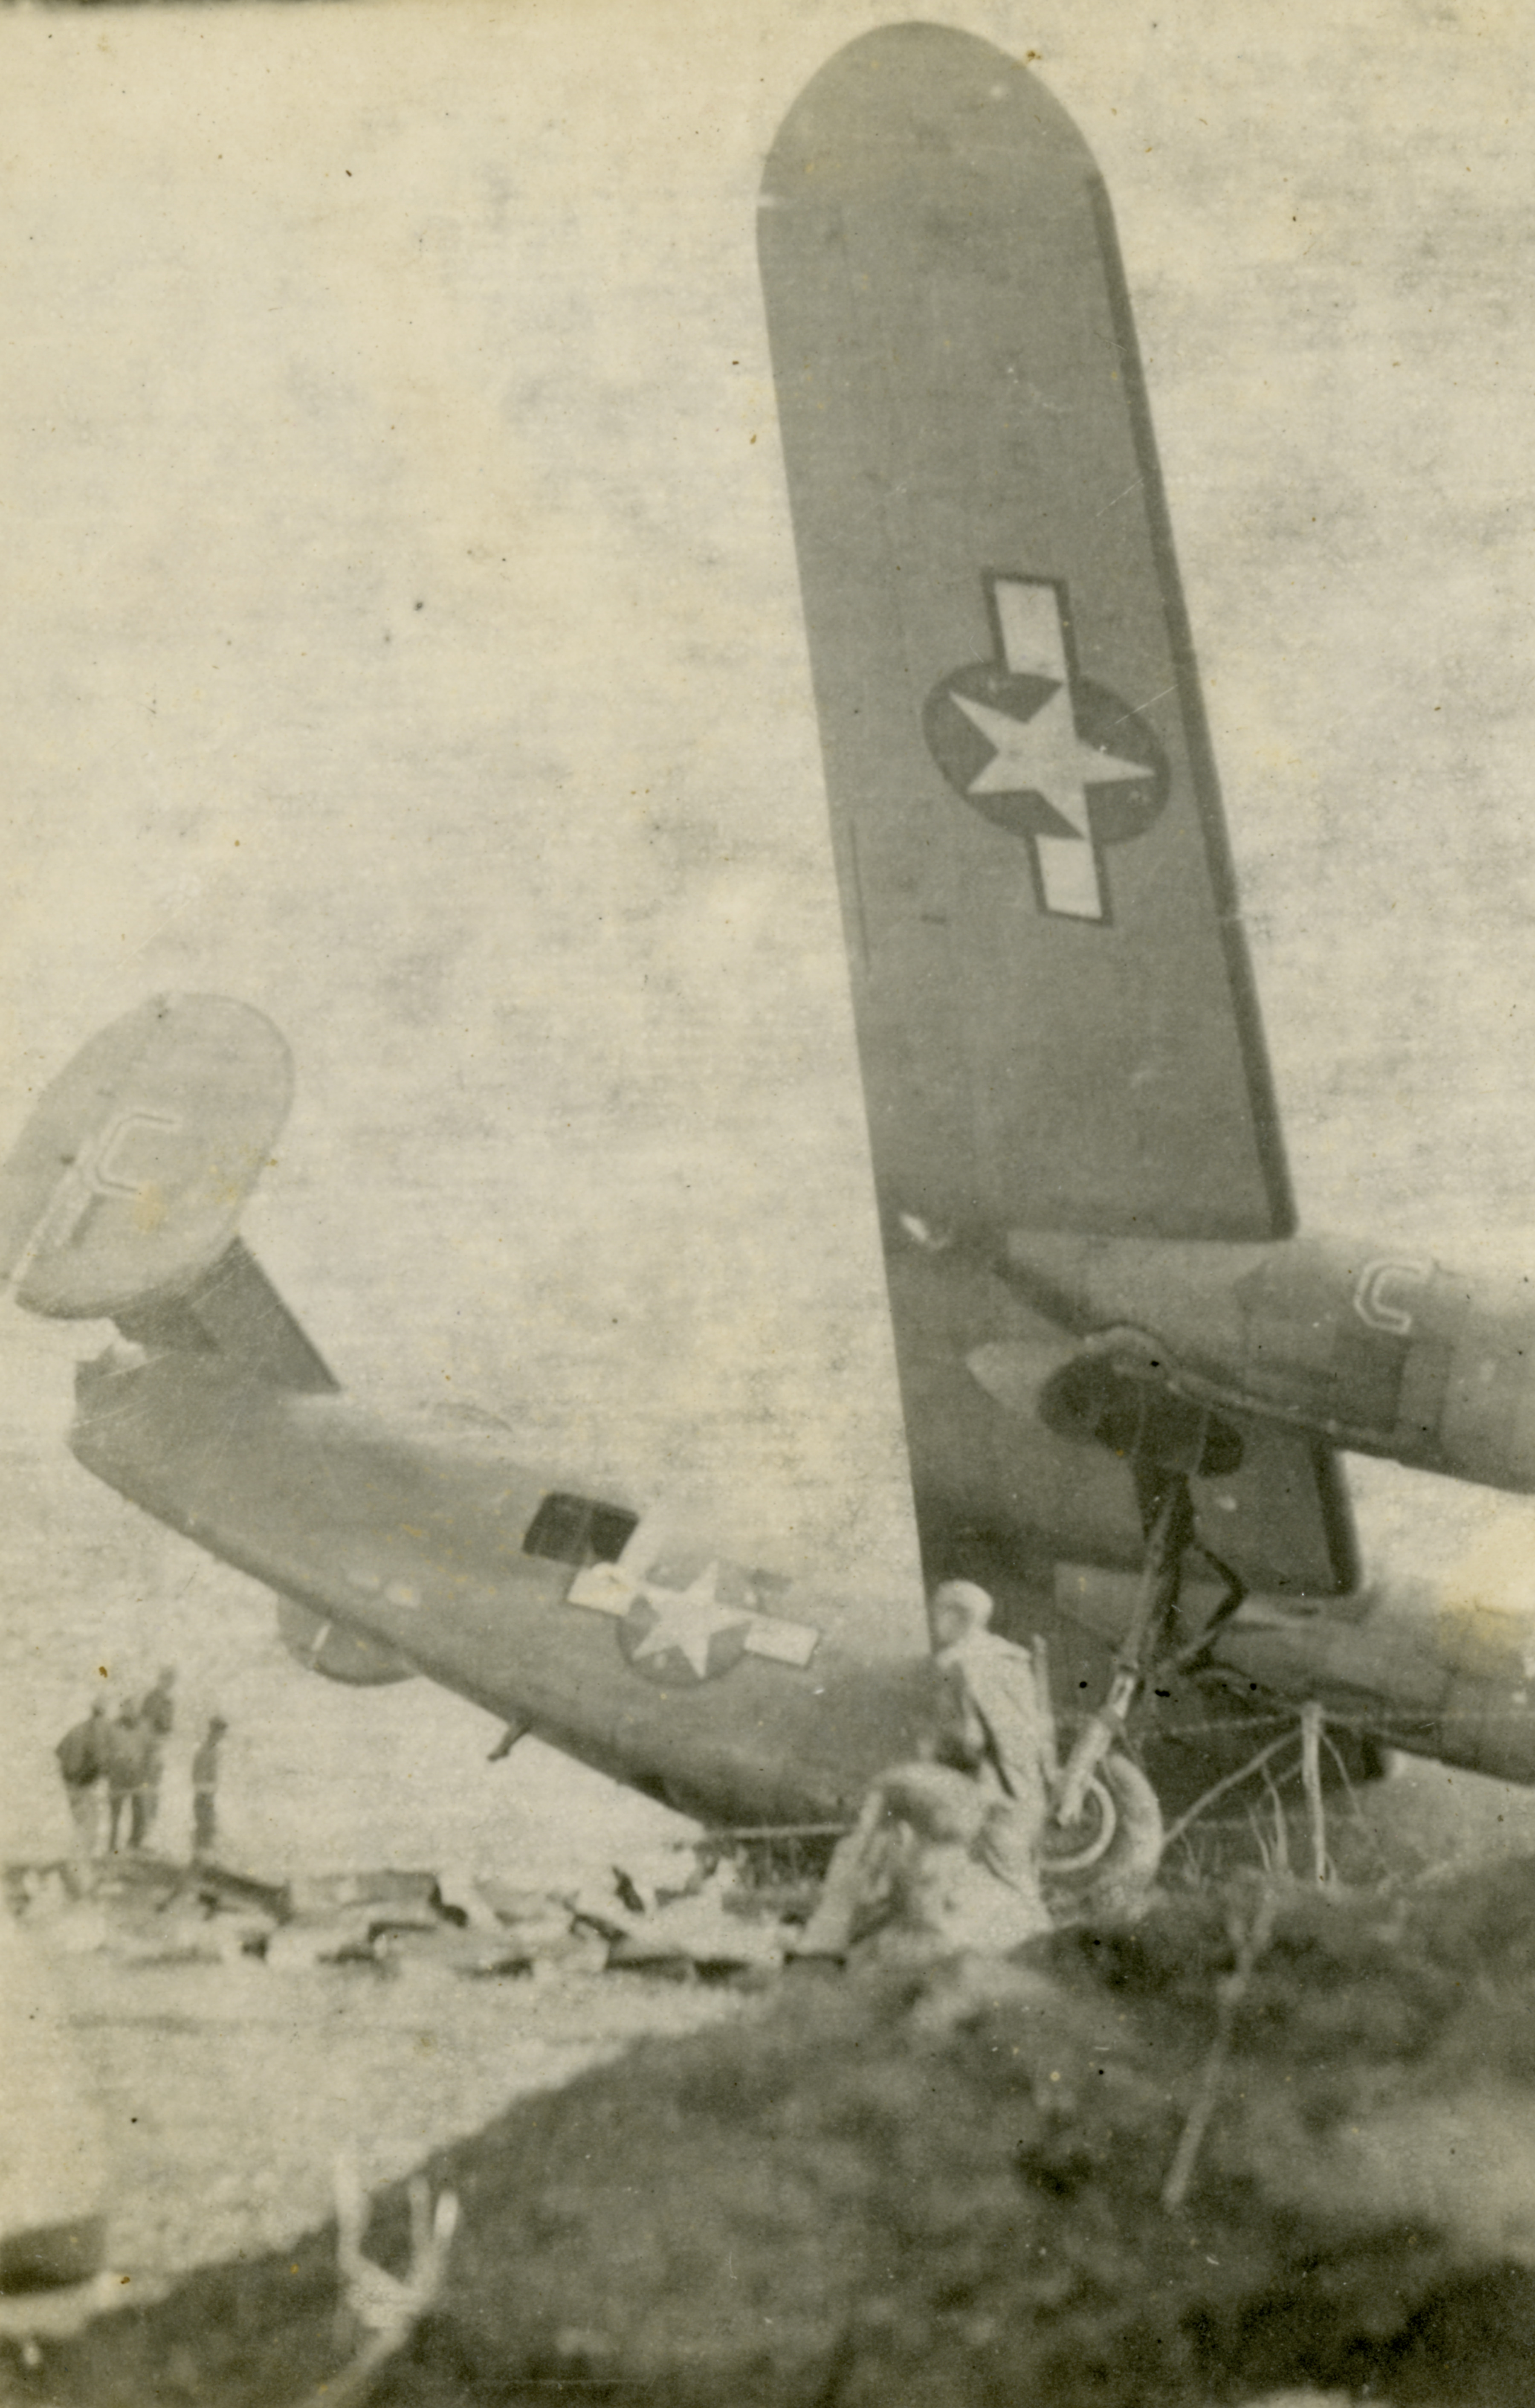 A B-24 crashed at the end of a runway in Gerbini, Sicily